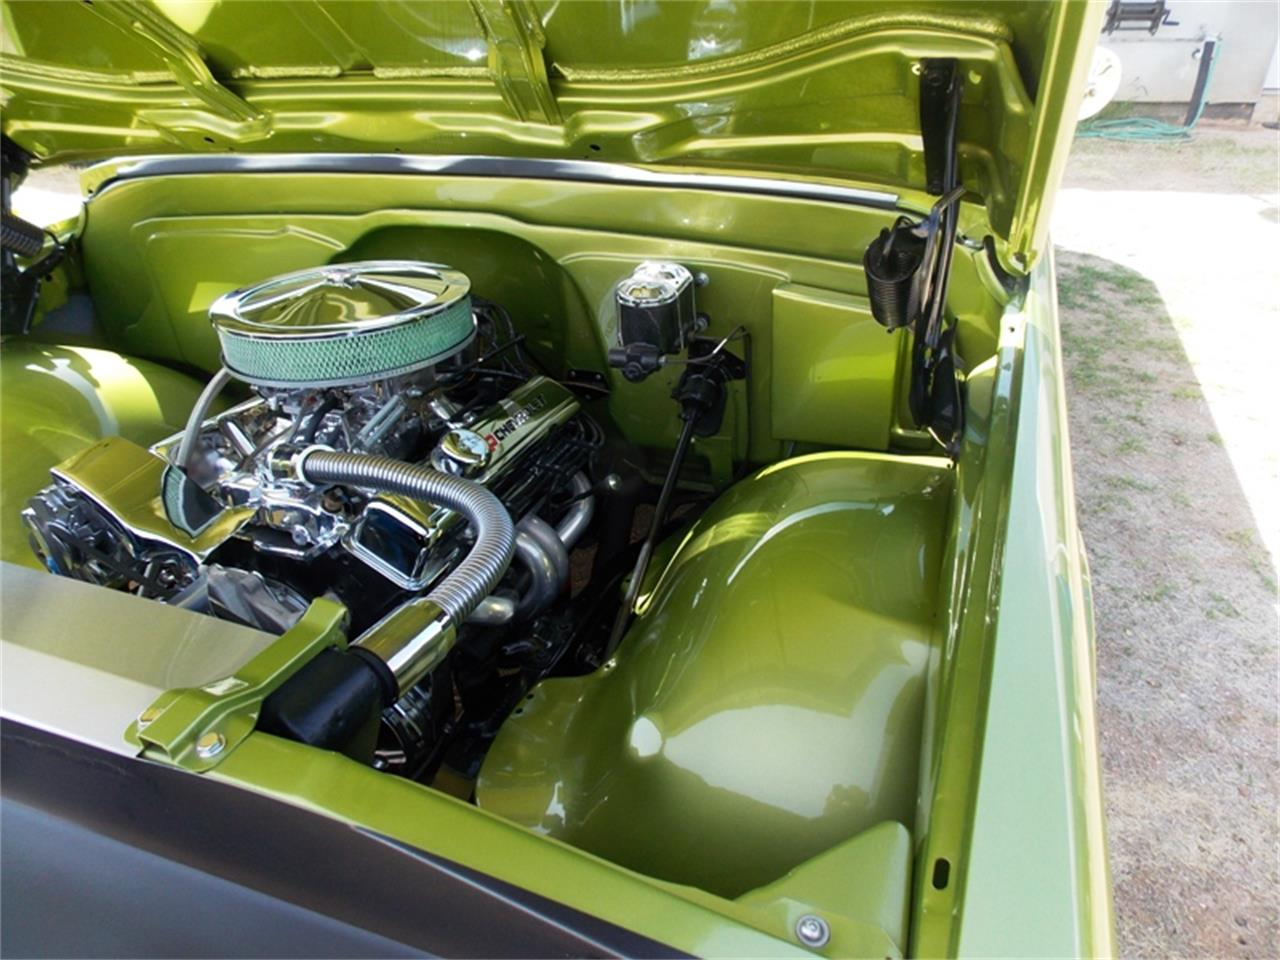 Large Picture of Classic 1970 Chevrolet Fleetside located in Tucson Arizona - $44,500.00 Offered by Old Iron AZ LLC - N1DG